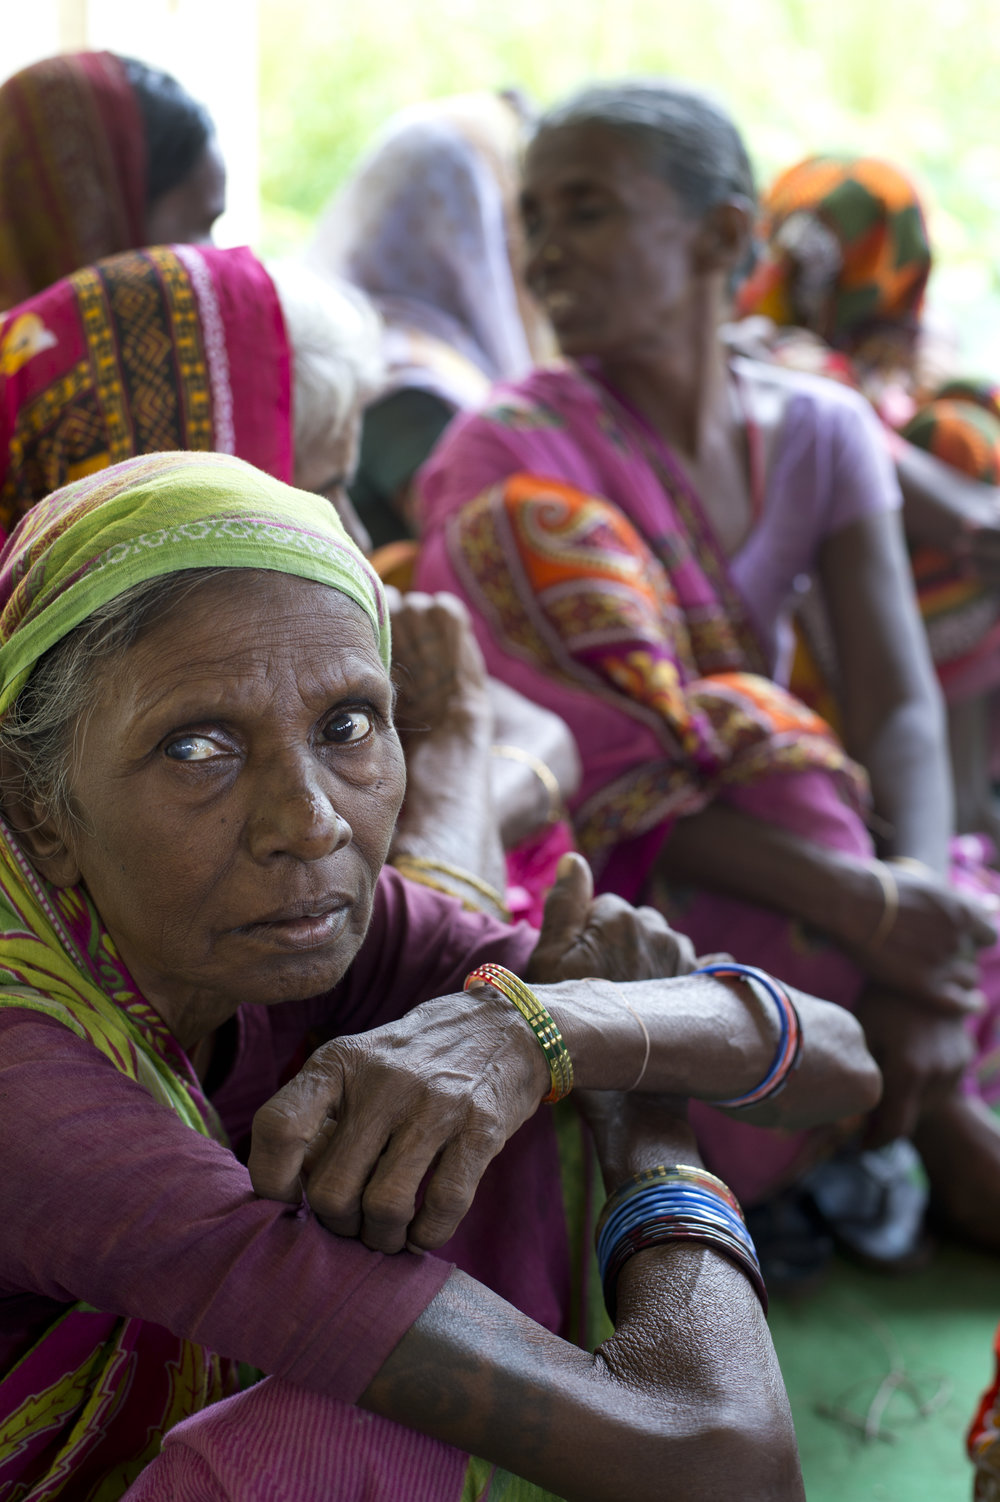 Second Sight awarded by the British Medical Journal in 2012 for our work in Bihar. - 'In terms of value for money or need for financial assistance Second Sight win hands down over large organisations working in the same field.'Prof. Philip Bloom, Ophthalmologist, writing in the British Medical Journal, 2016.